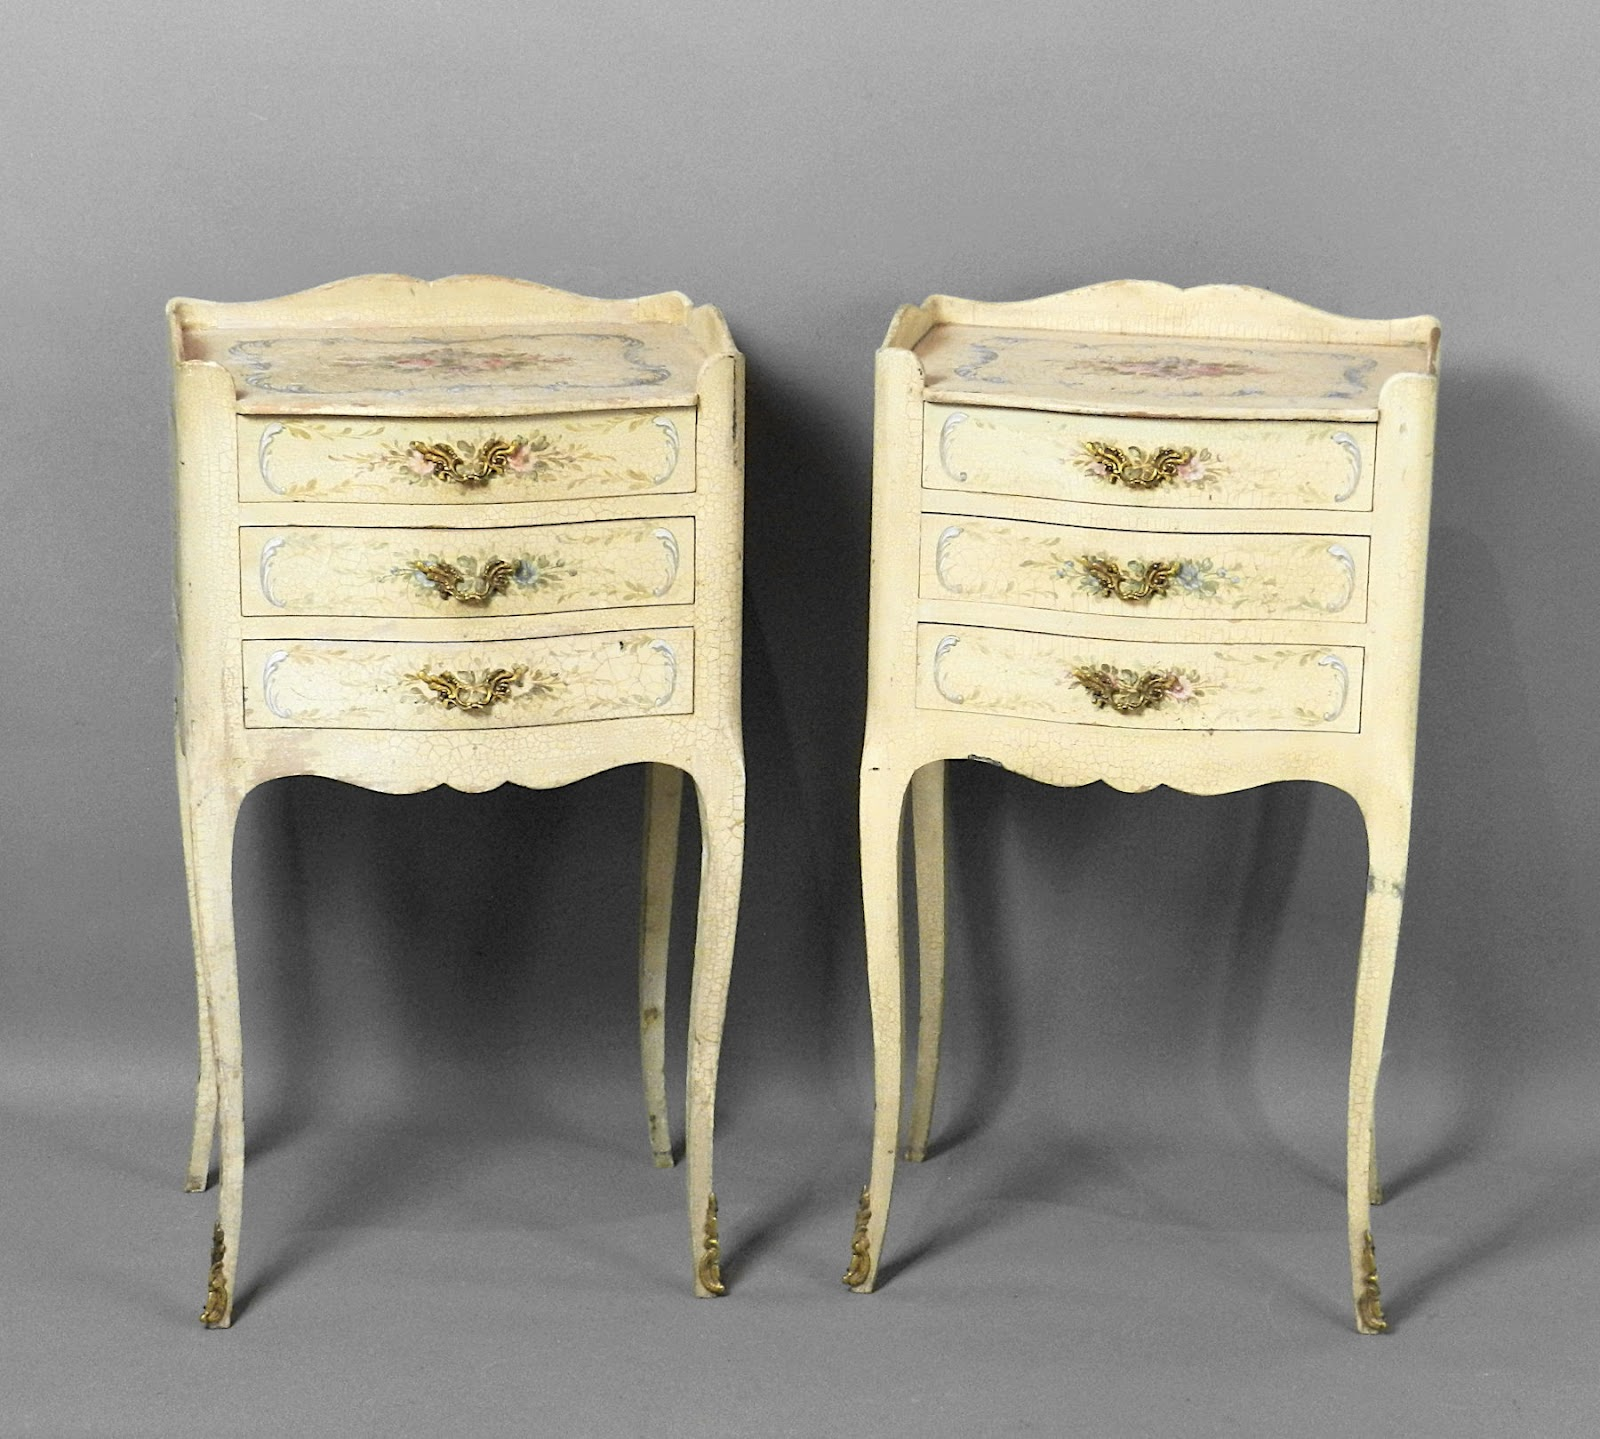 Shabby chic French bedside cabinets